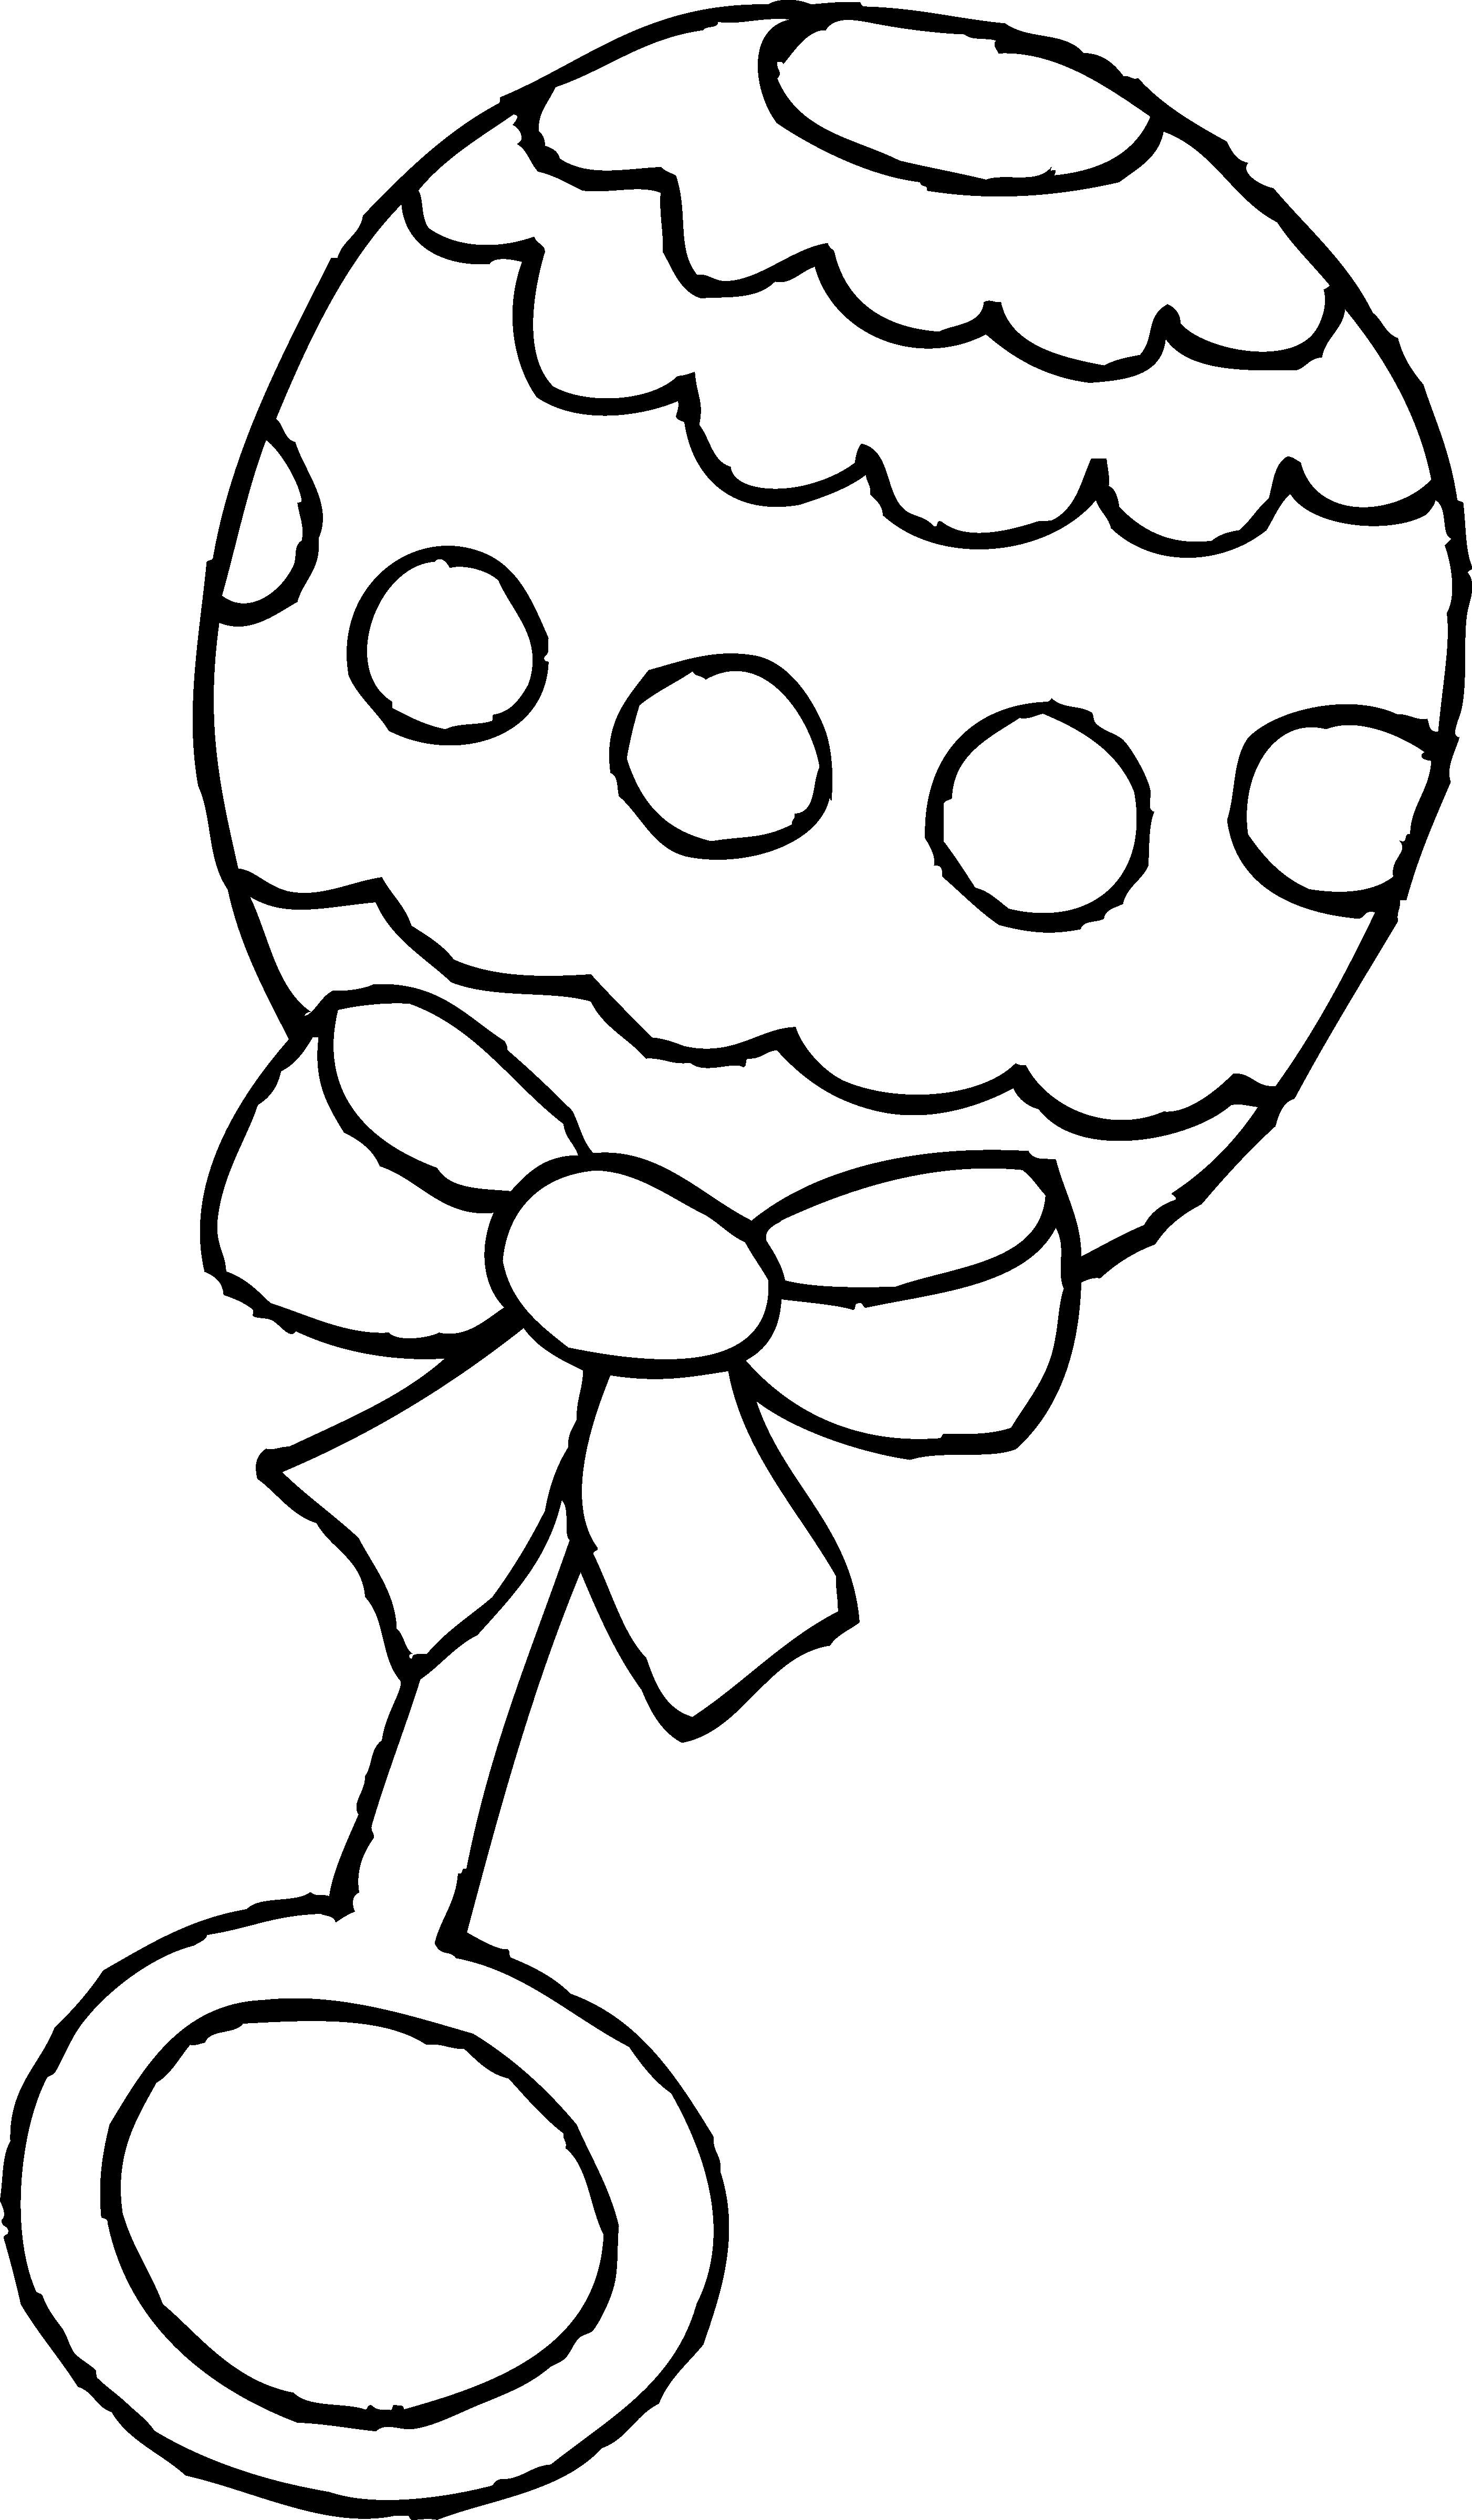 2803x4798 Baby Rattle Coloring Page